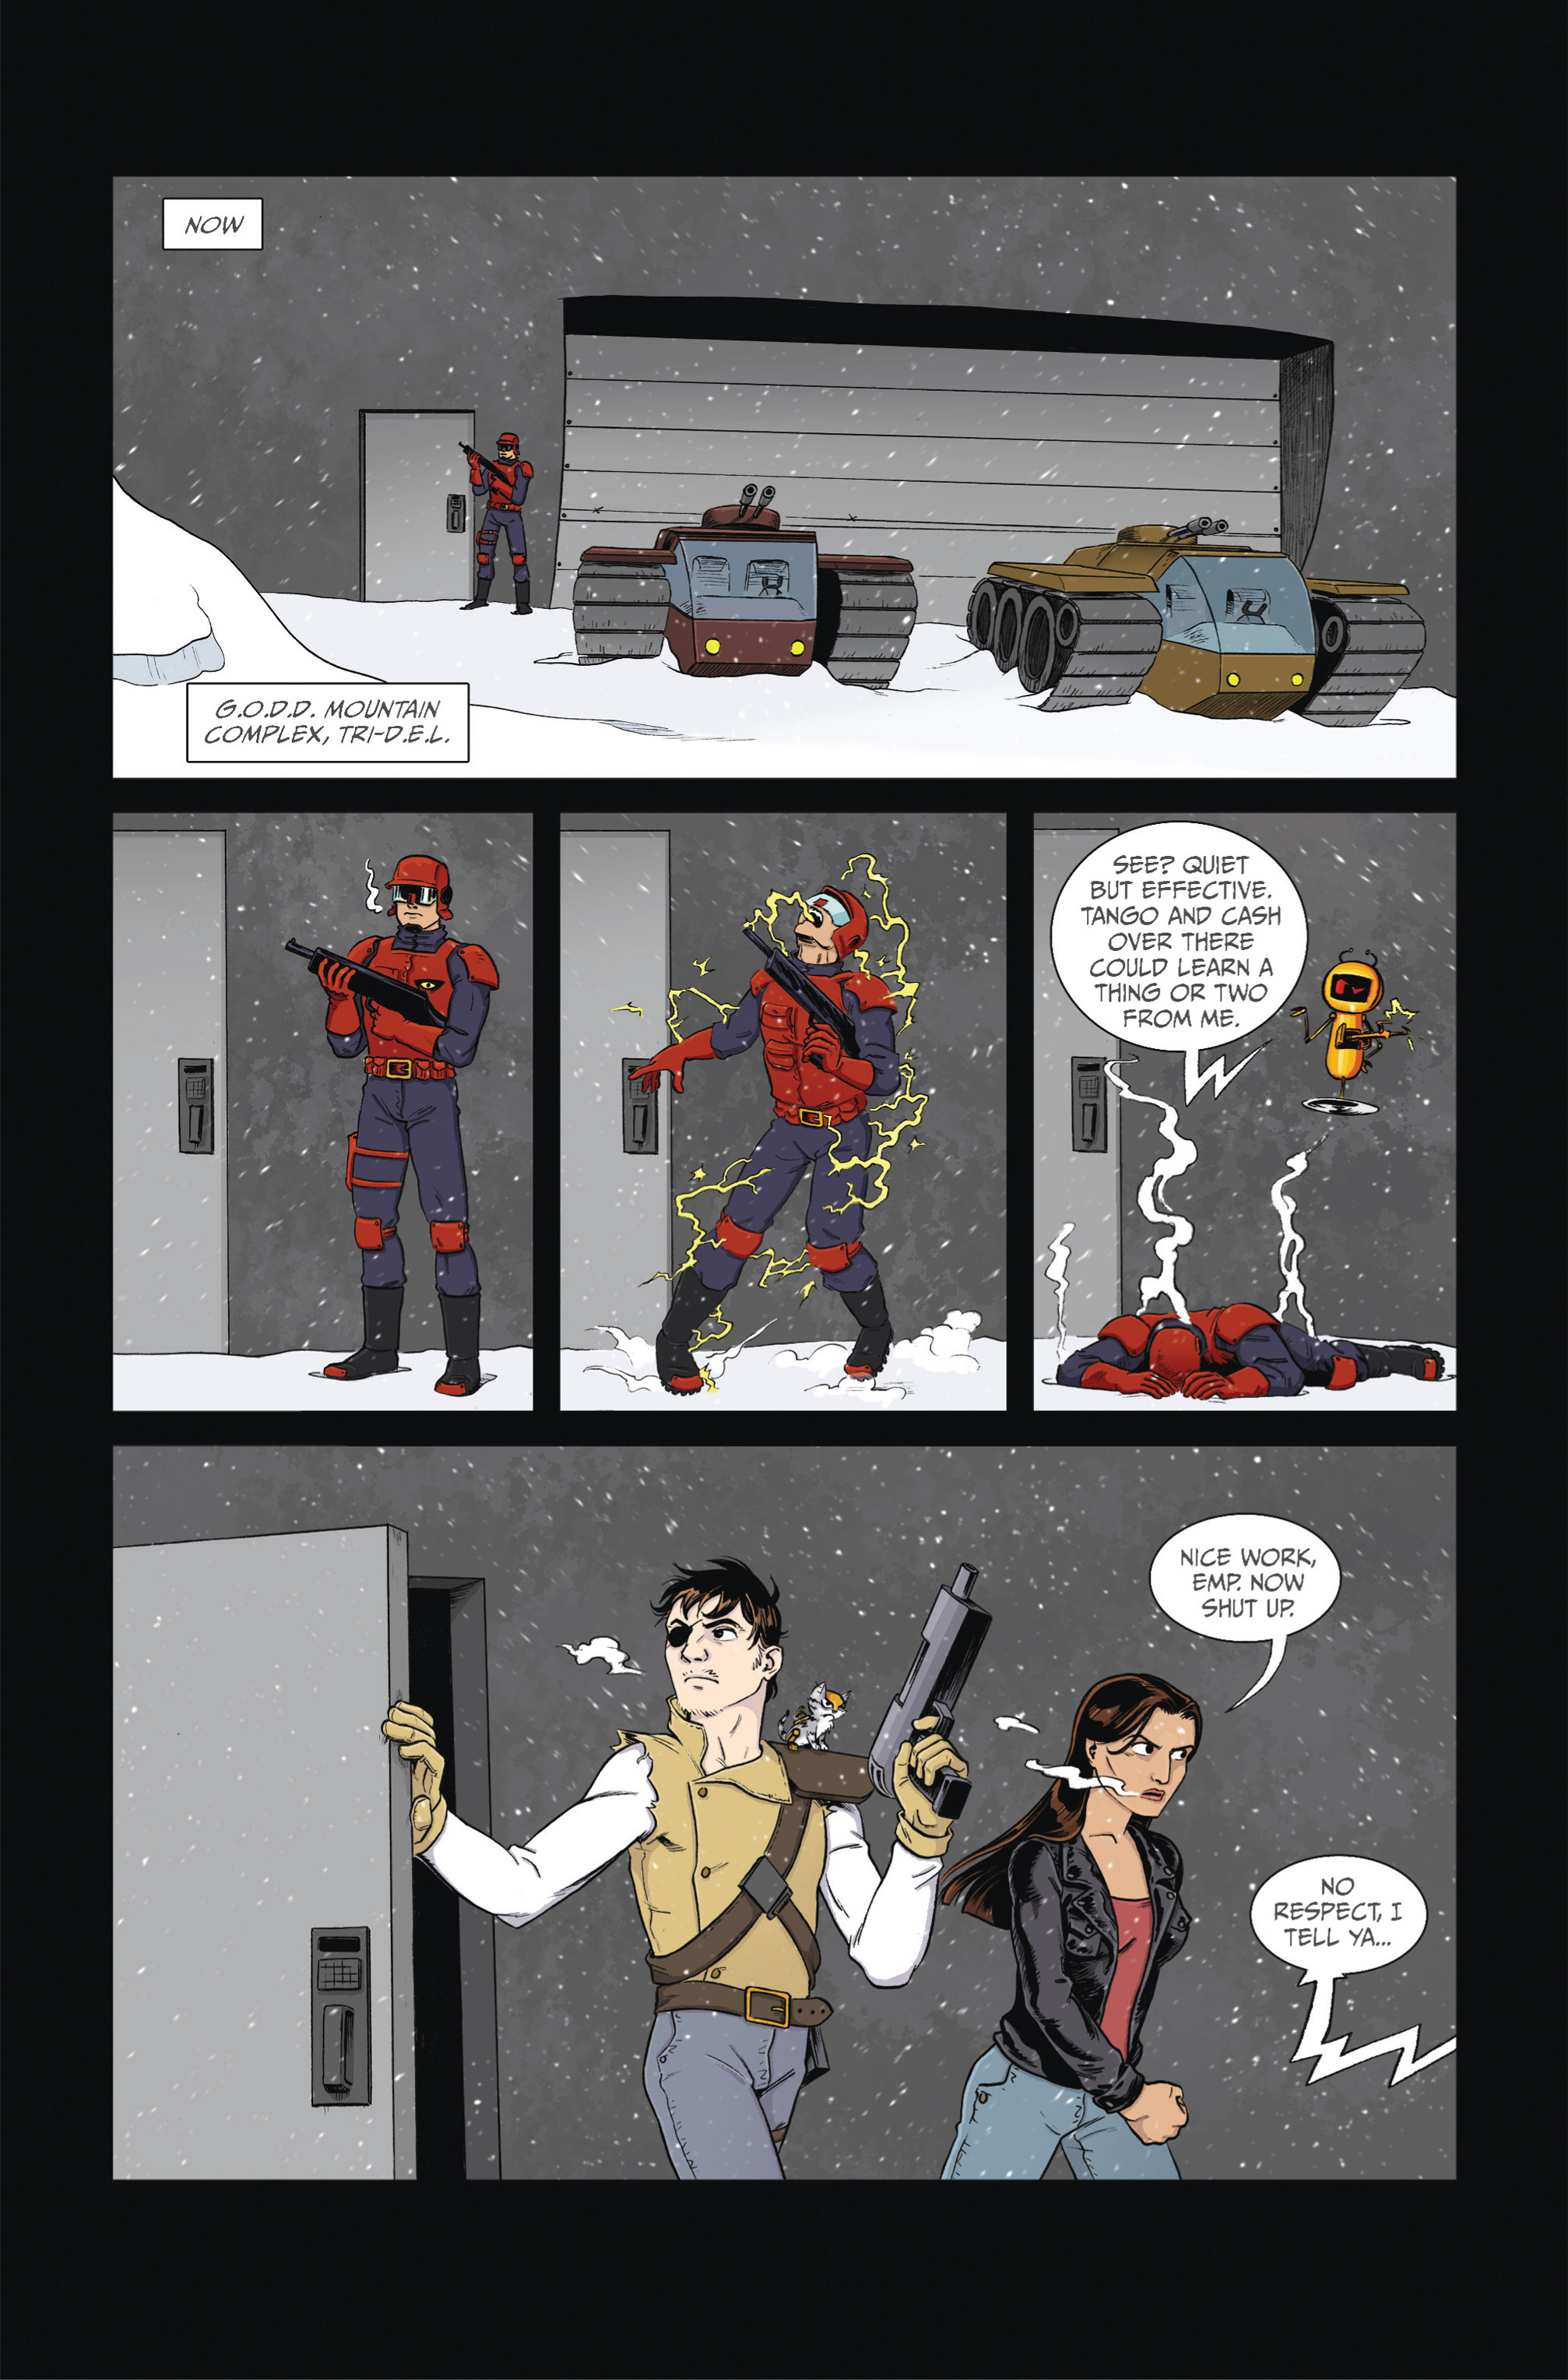 Read online Ehmm Theory: Everything & Small Doses comic -  Issue #2 - 7